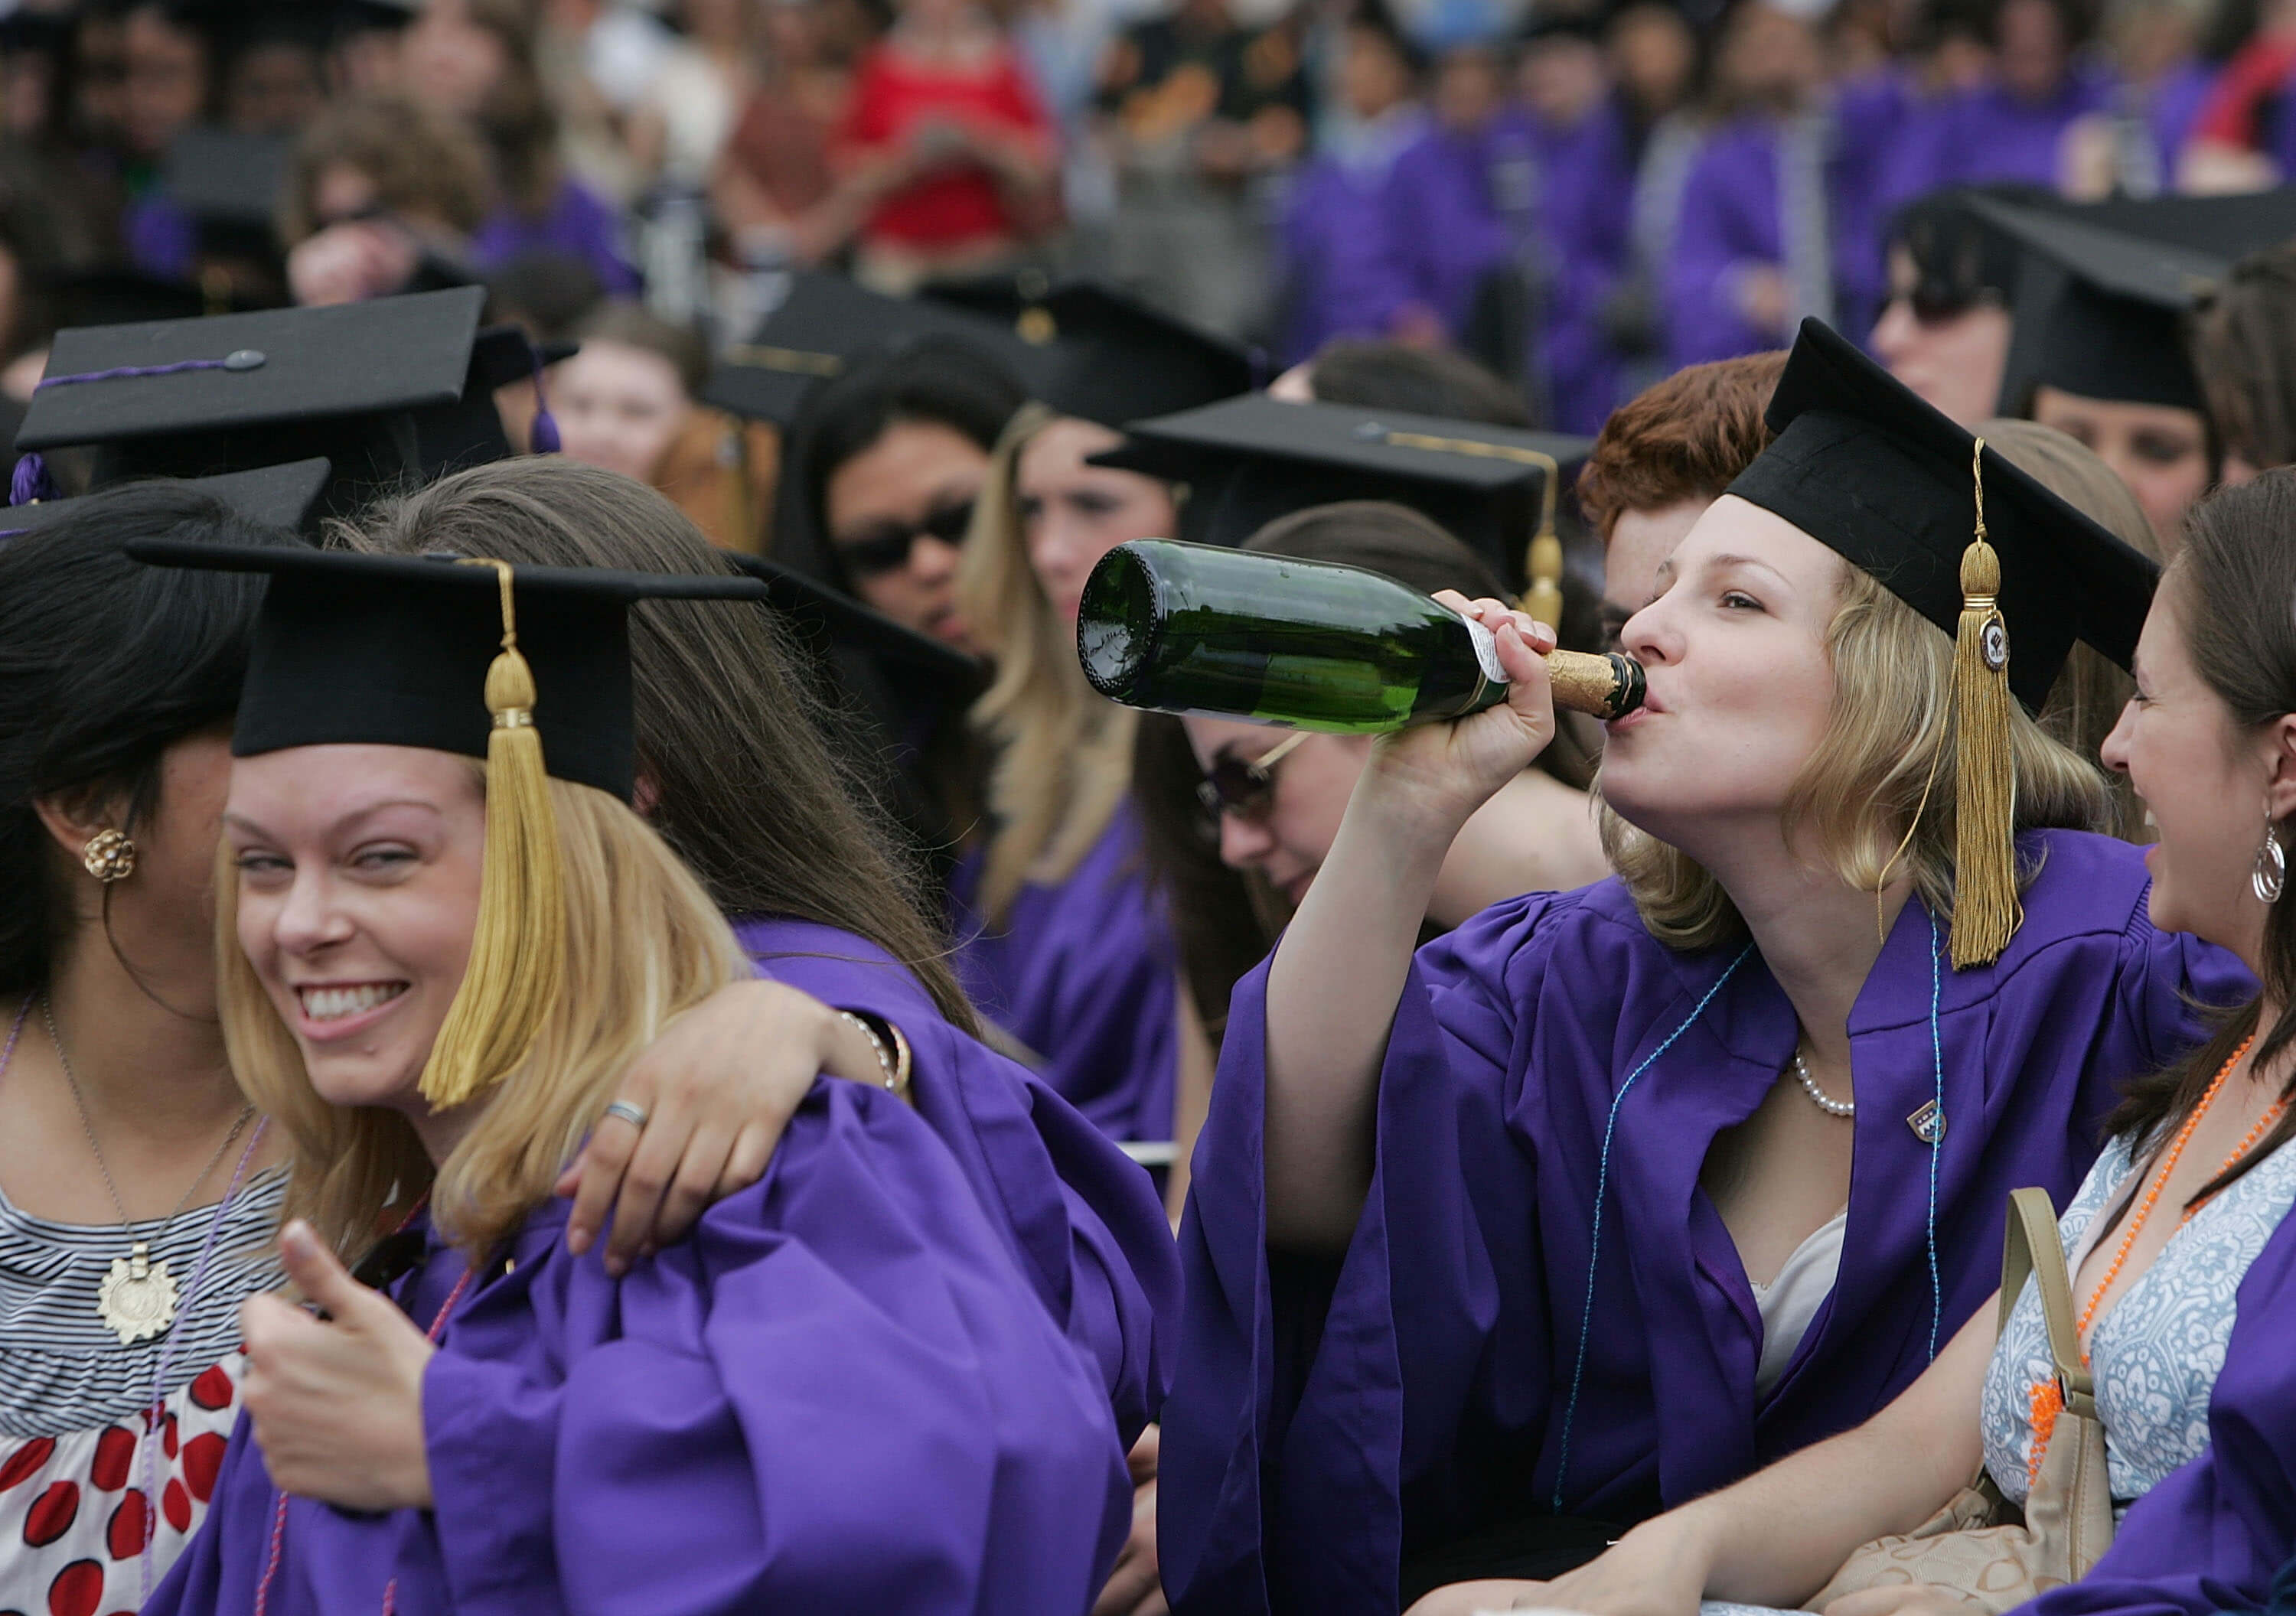 How Is The Student-Debt Crisis Affecting The Lives Of College Graduates?